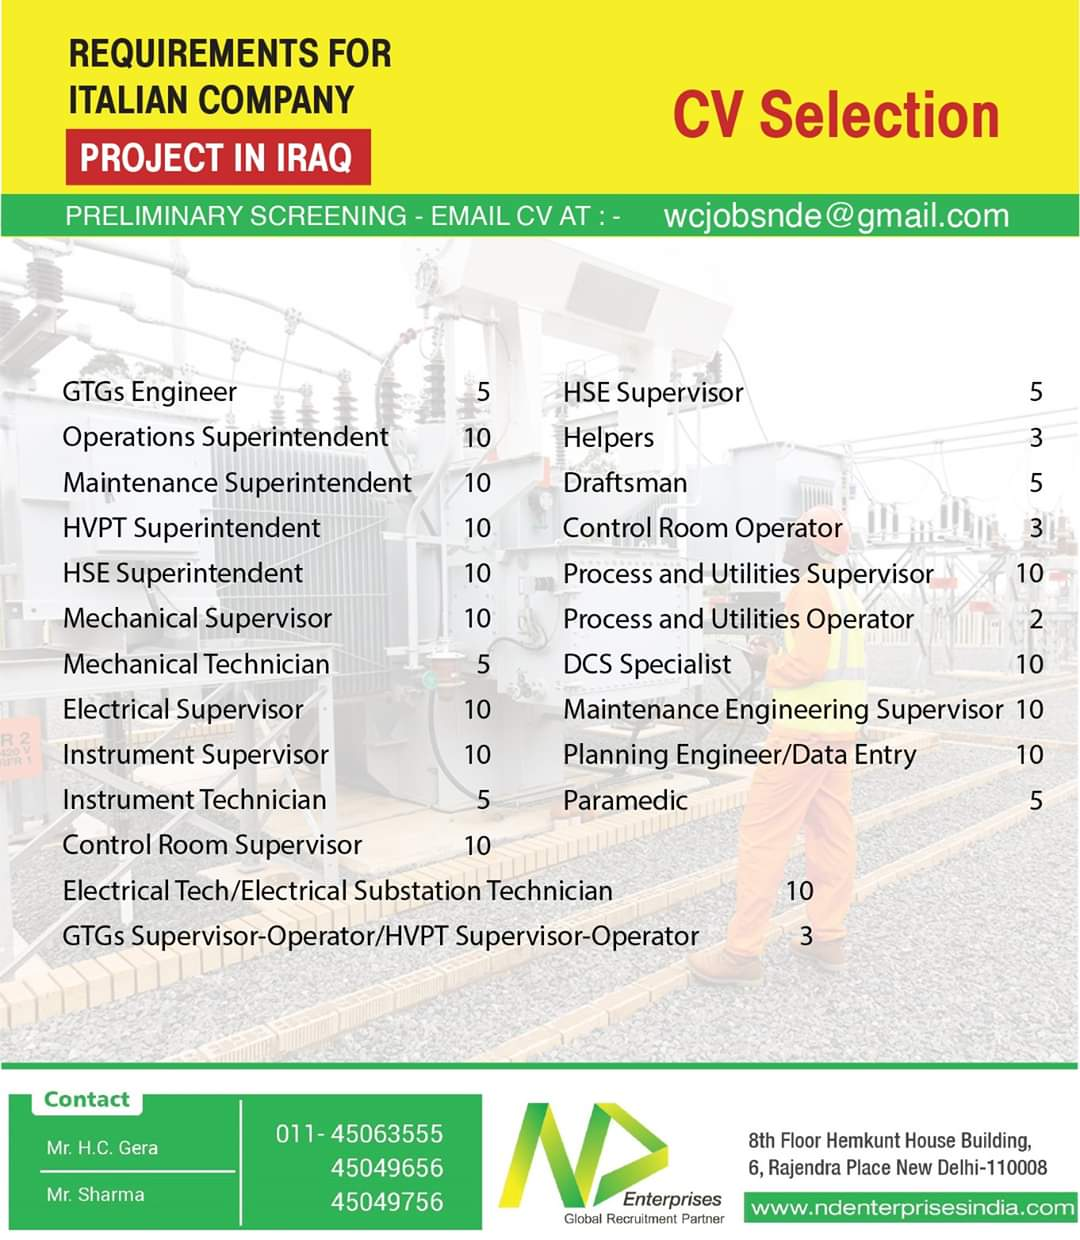 REQUIREMENT FOR ITALIAN COMPANY